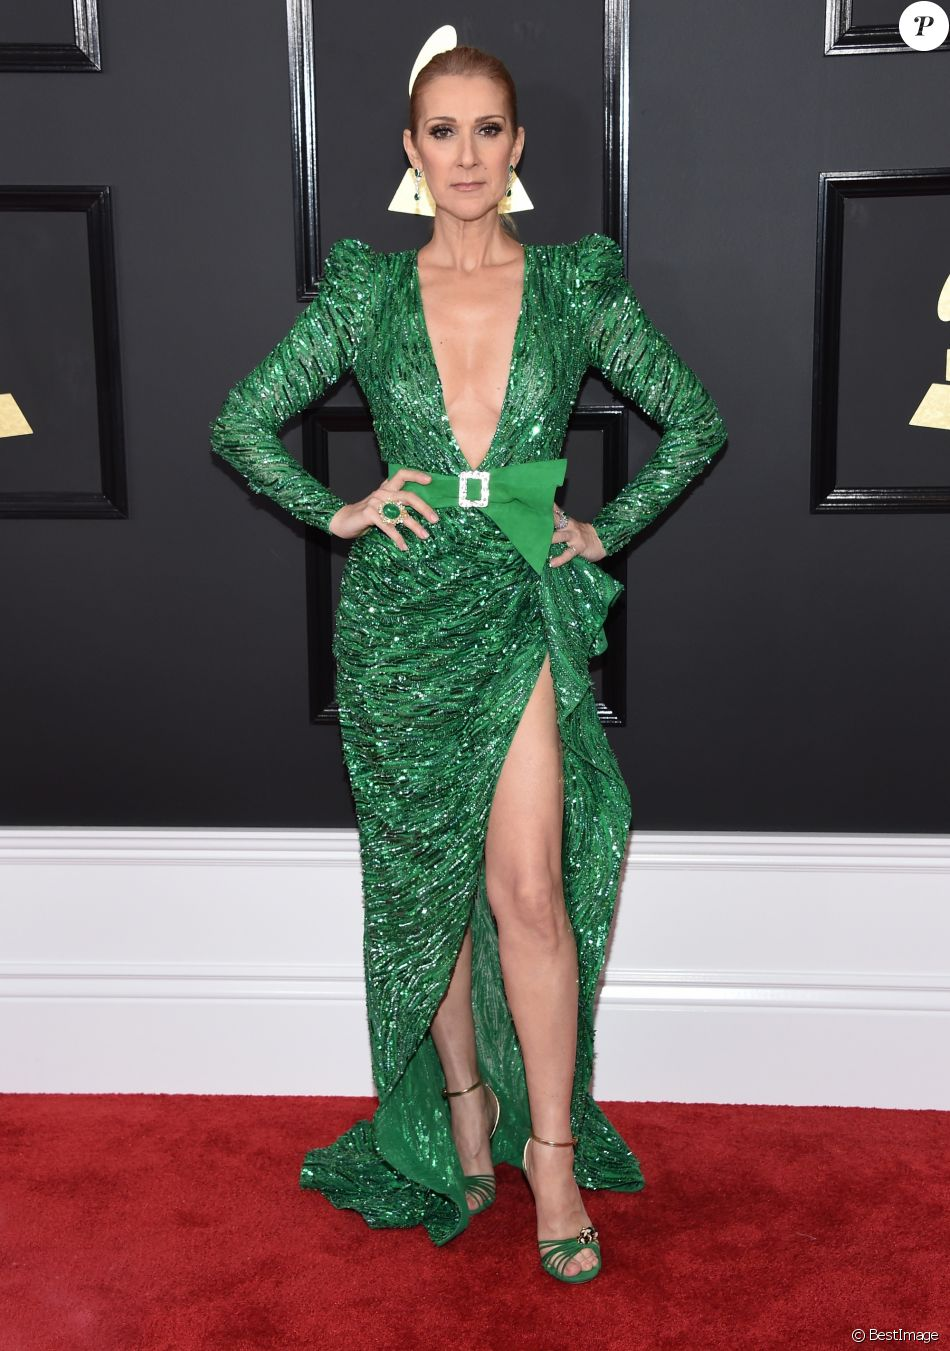 Celine Dion à la cérémonie des 59èmes Grammy Awards au Staples Center à Los Angeles le 12 Février 2017. © Lisa O'Connor via ZUMA Wire / Bestimage